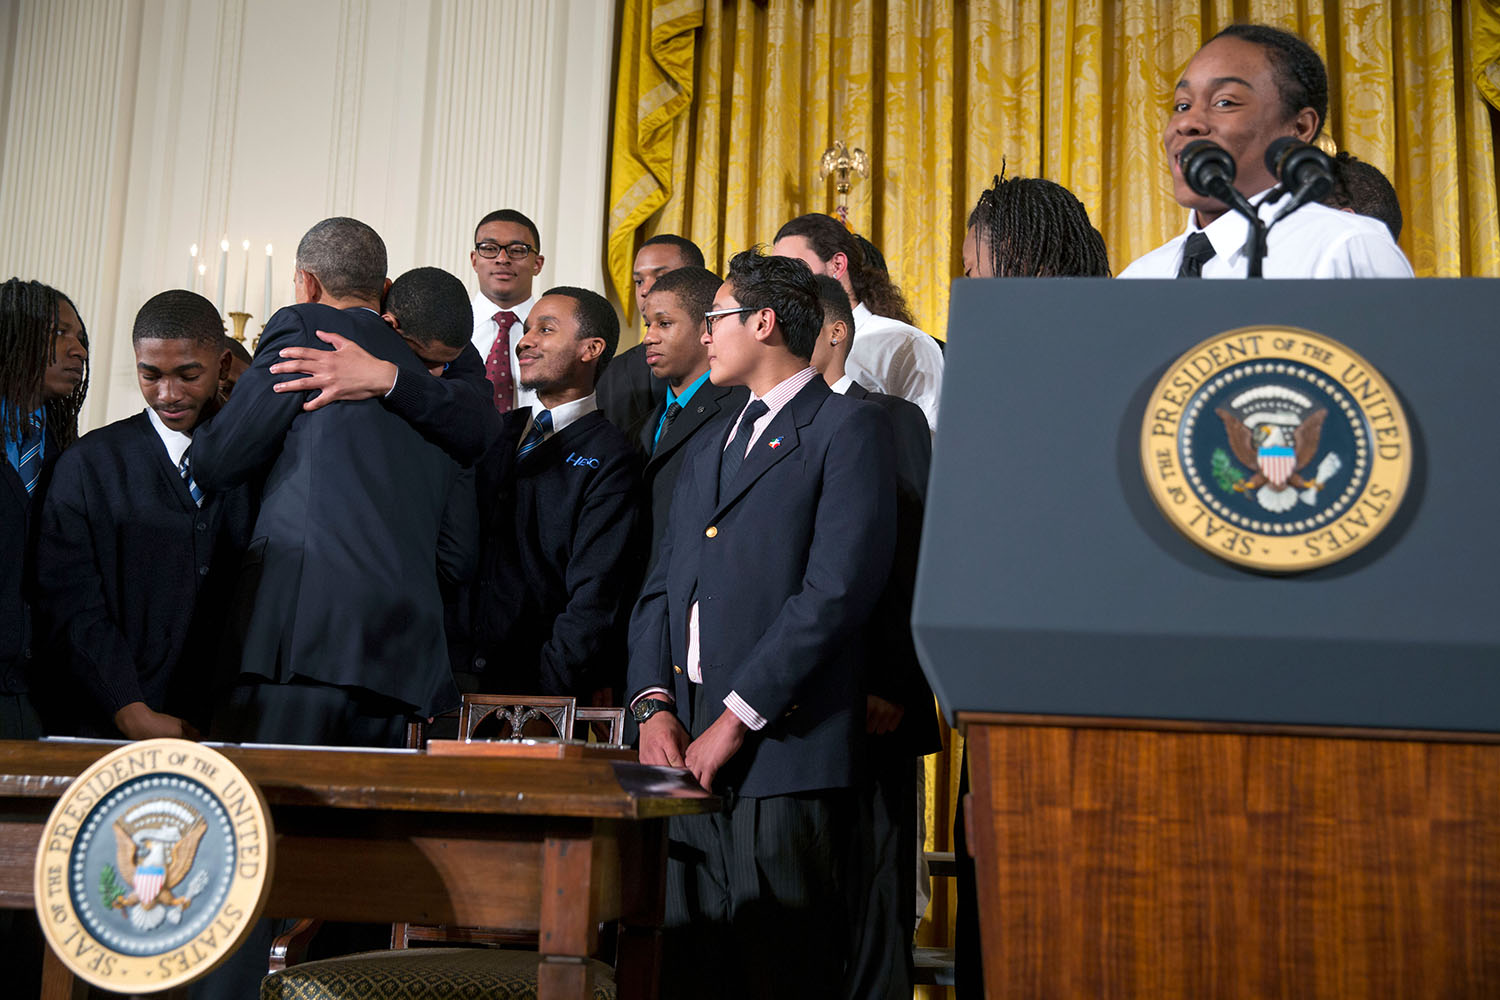 President Obama speaks on My Brother's Keeper